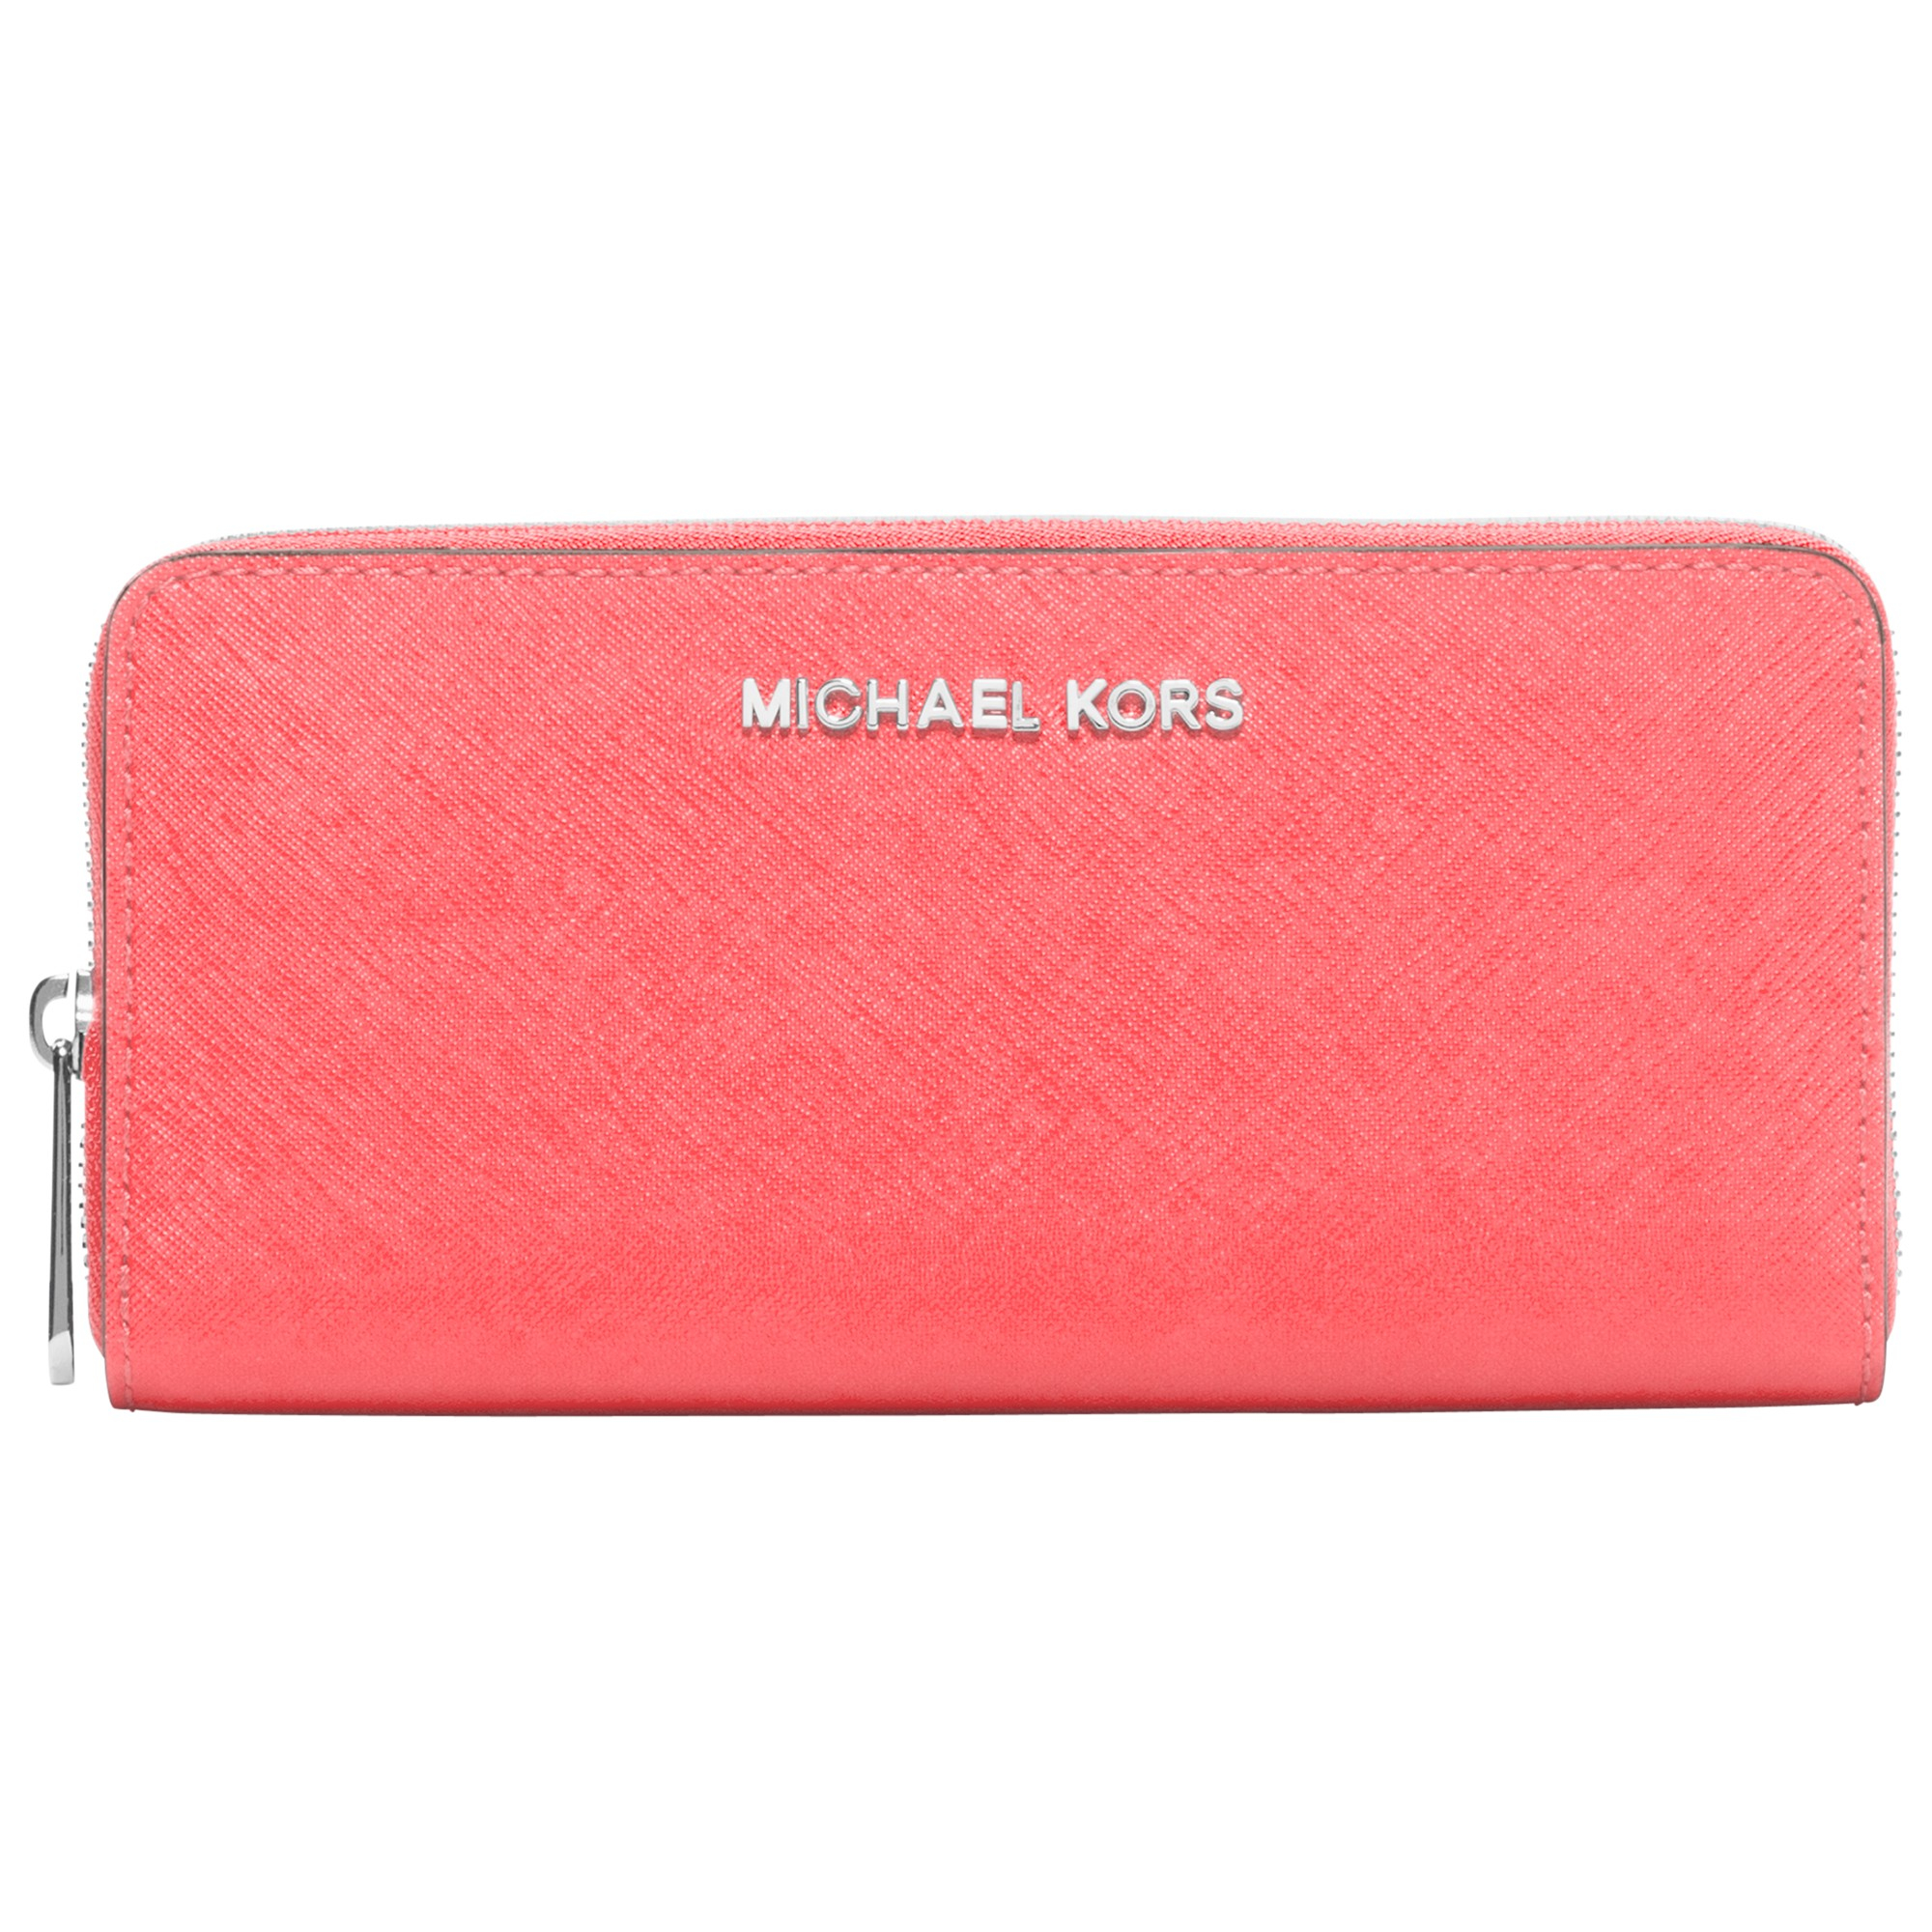 0603dfb999a6 MICHAEL Michael Kors Jet Set Travel Leather Continental Purse in ...